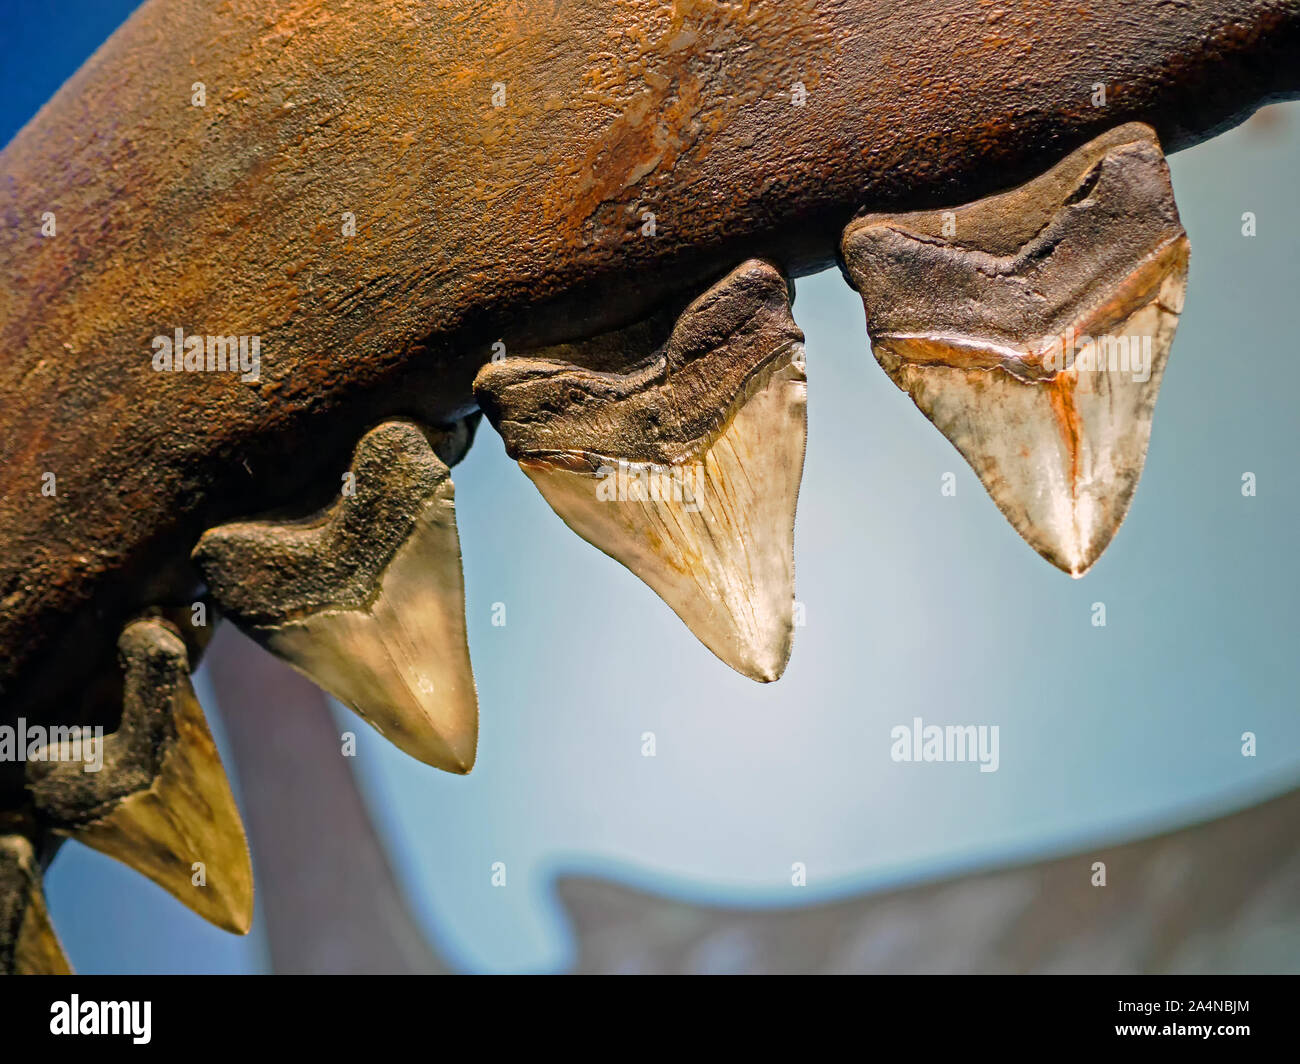 Close up of a life sized representation of Megalodon teeth attached to the jaw on exhibit at the Texas State Aquarium in Corpus Christi, Texas USA. Stock Photo